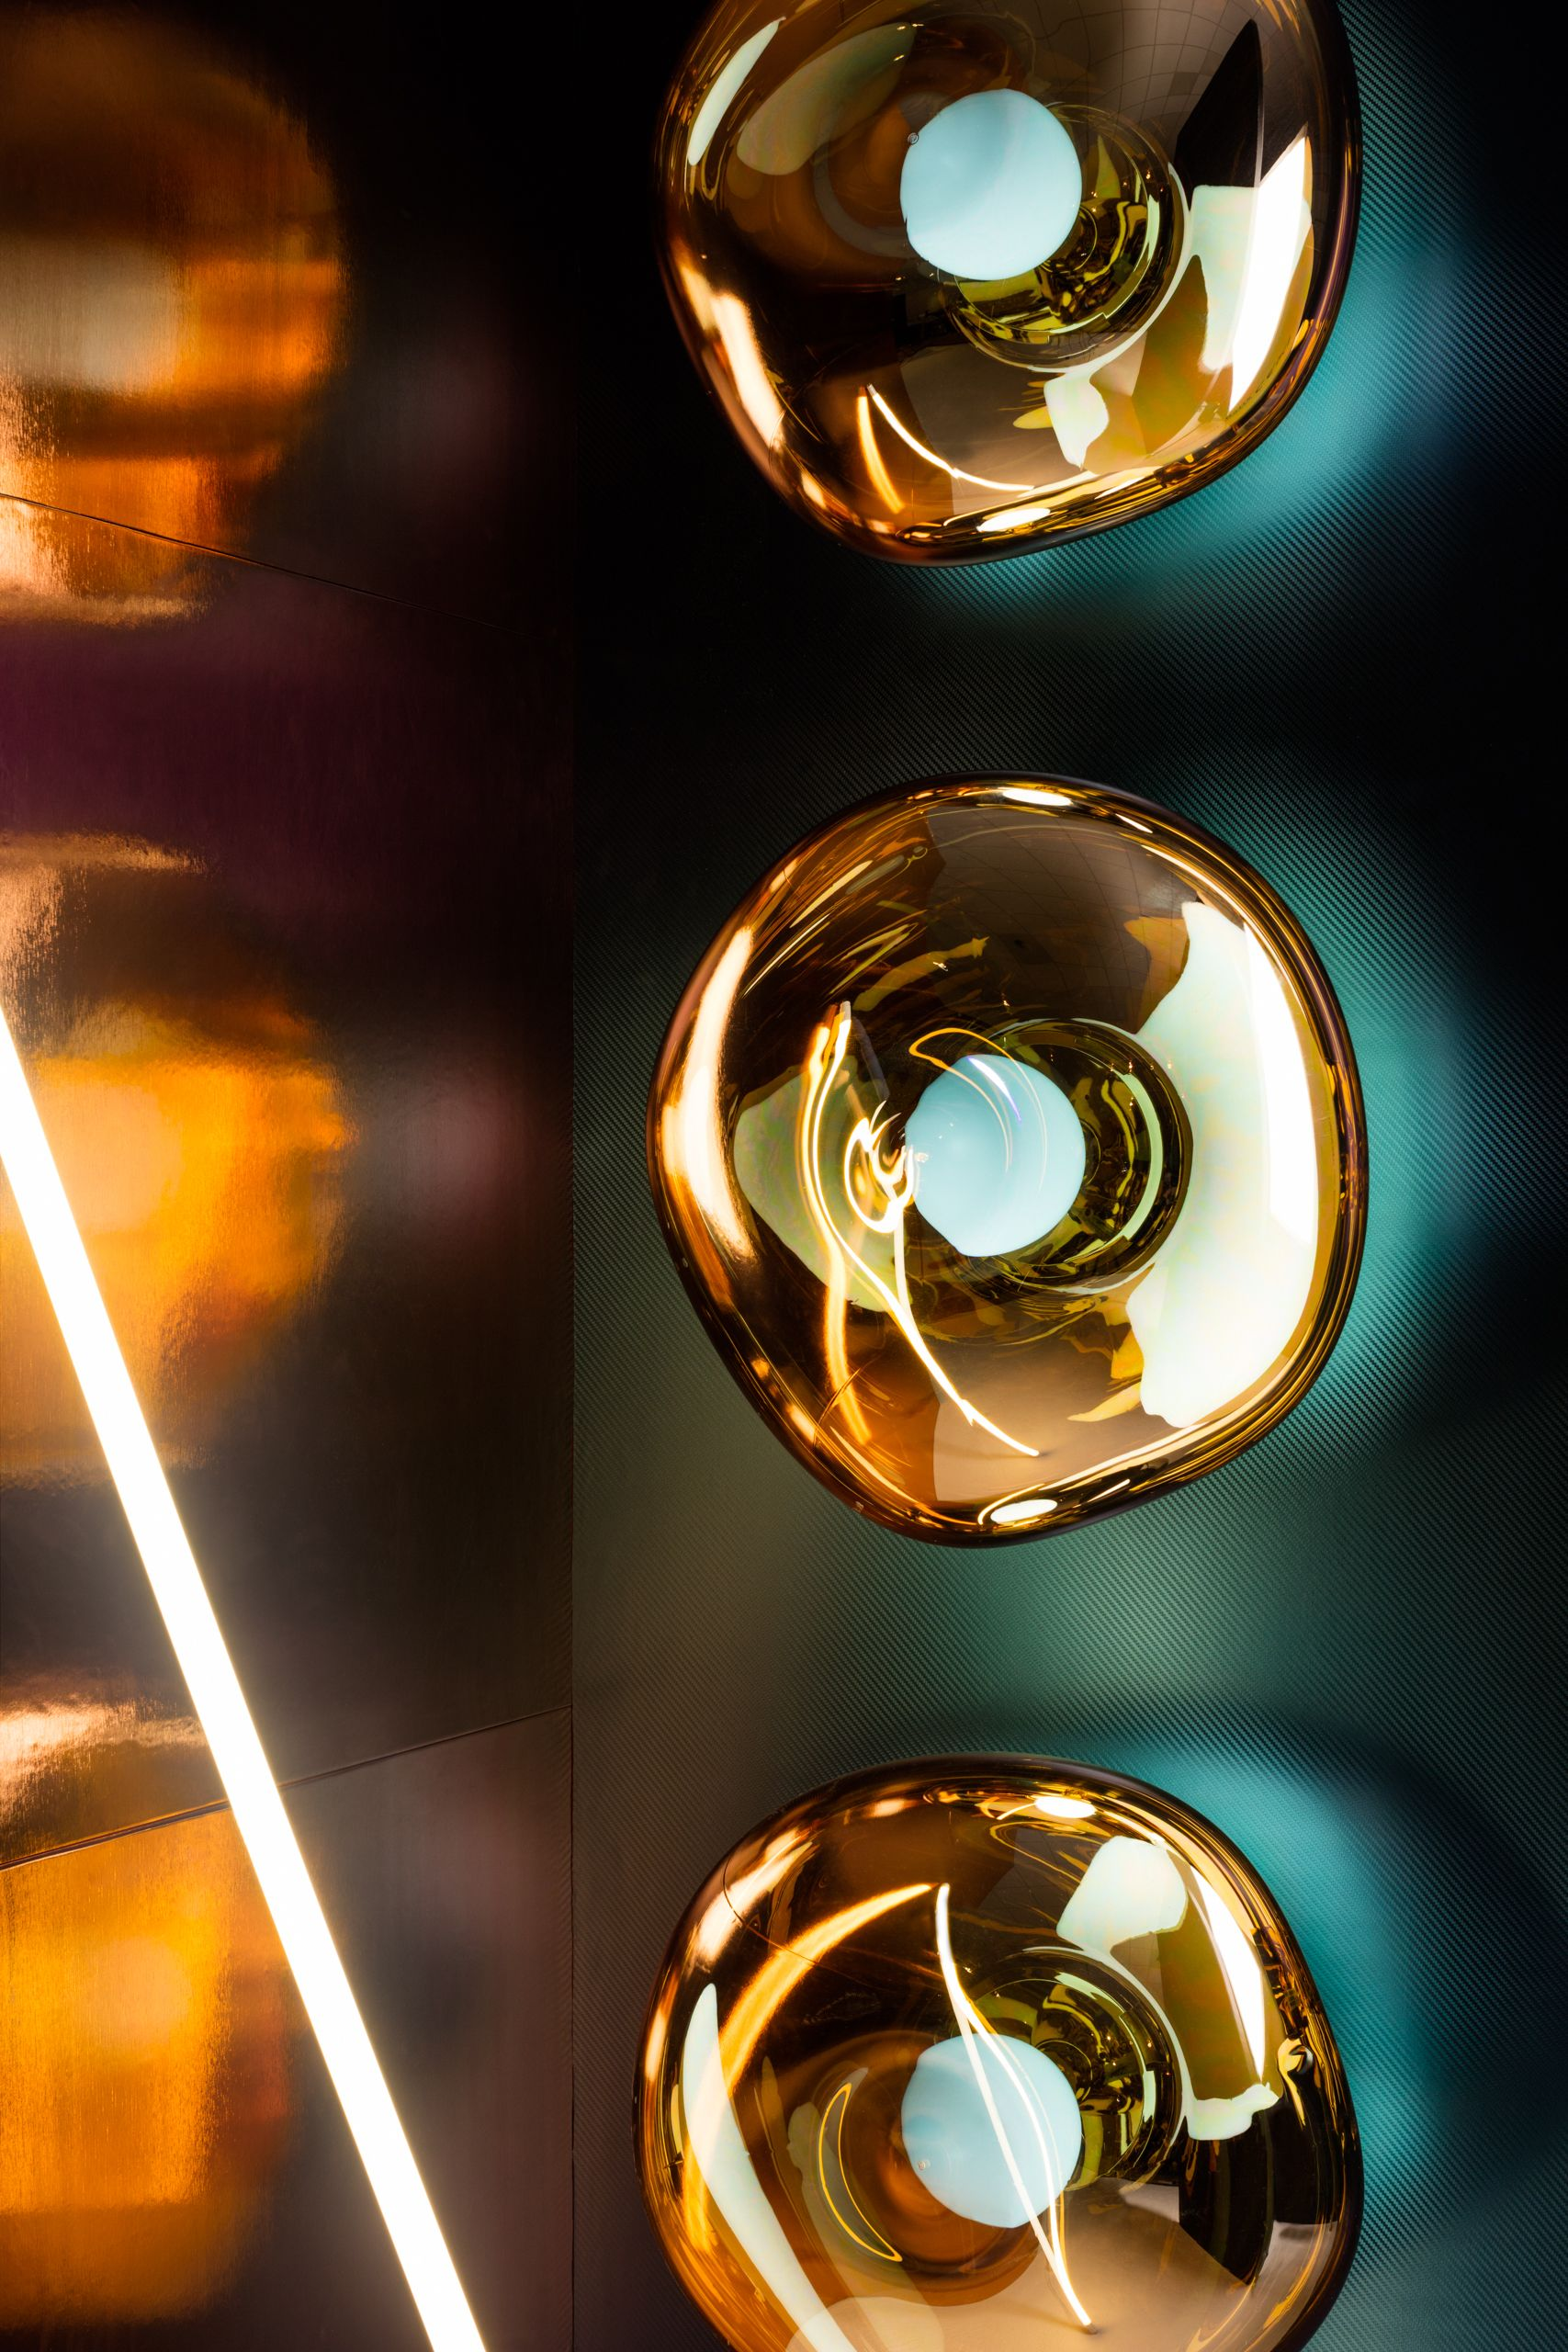 Melt Surface Gold 15 Off All Tom Dixon Lighting Furniture And Accessories Now Thru October 15th Shop The C Tom Dixon Lighting Wall Ceiling Lights Tom Dixon